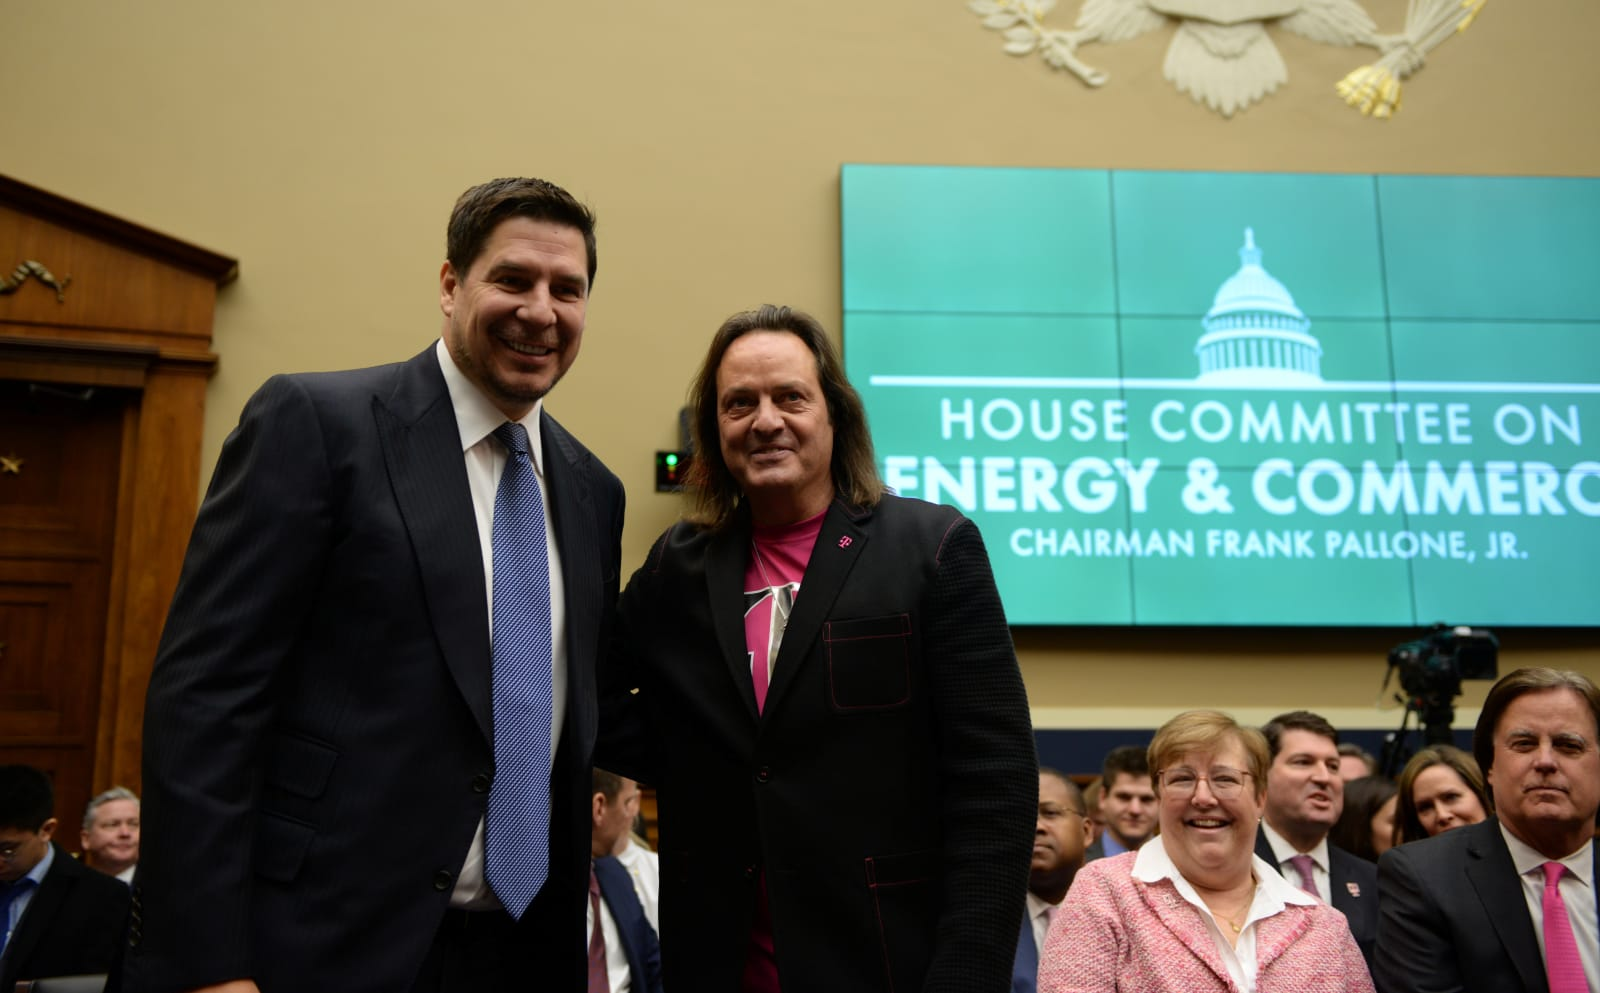 Lawmakers urge the FCC to seek public input on T-Mobile / Sprint merger